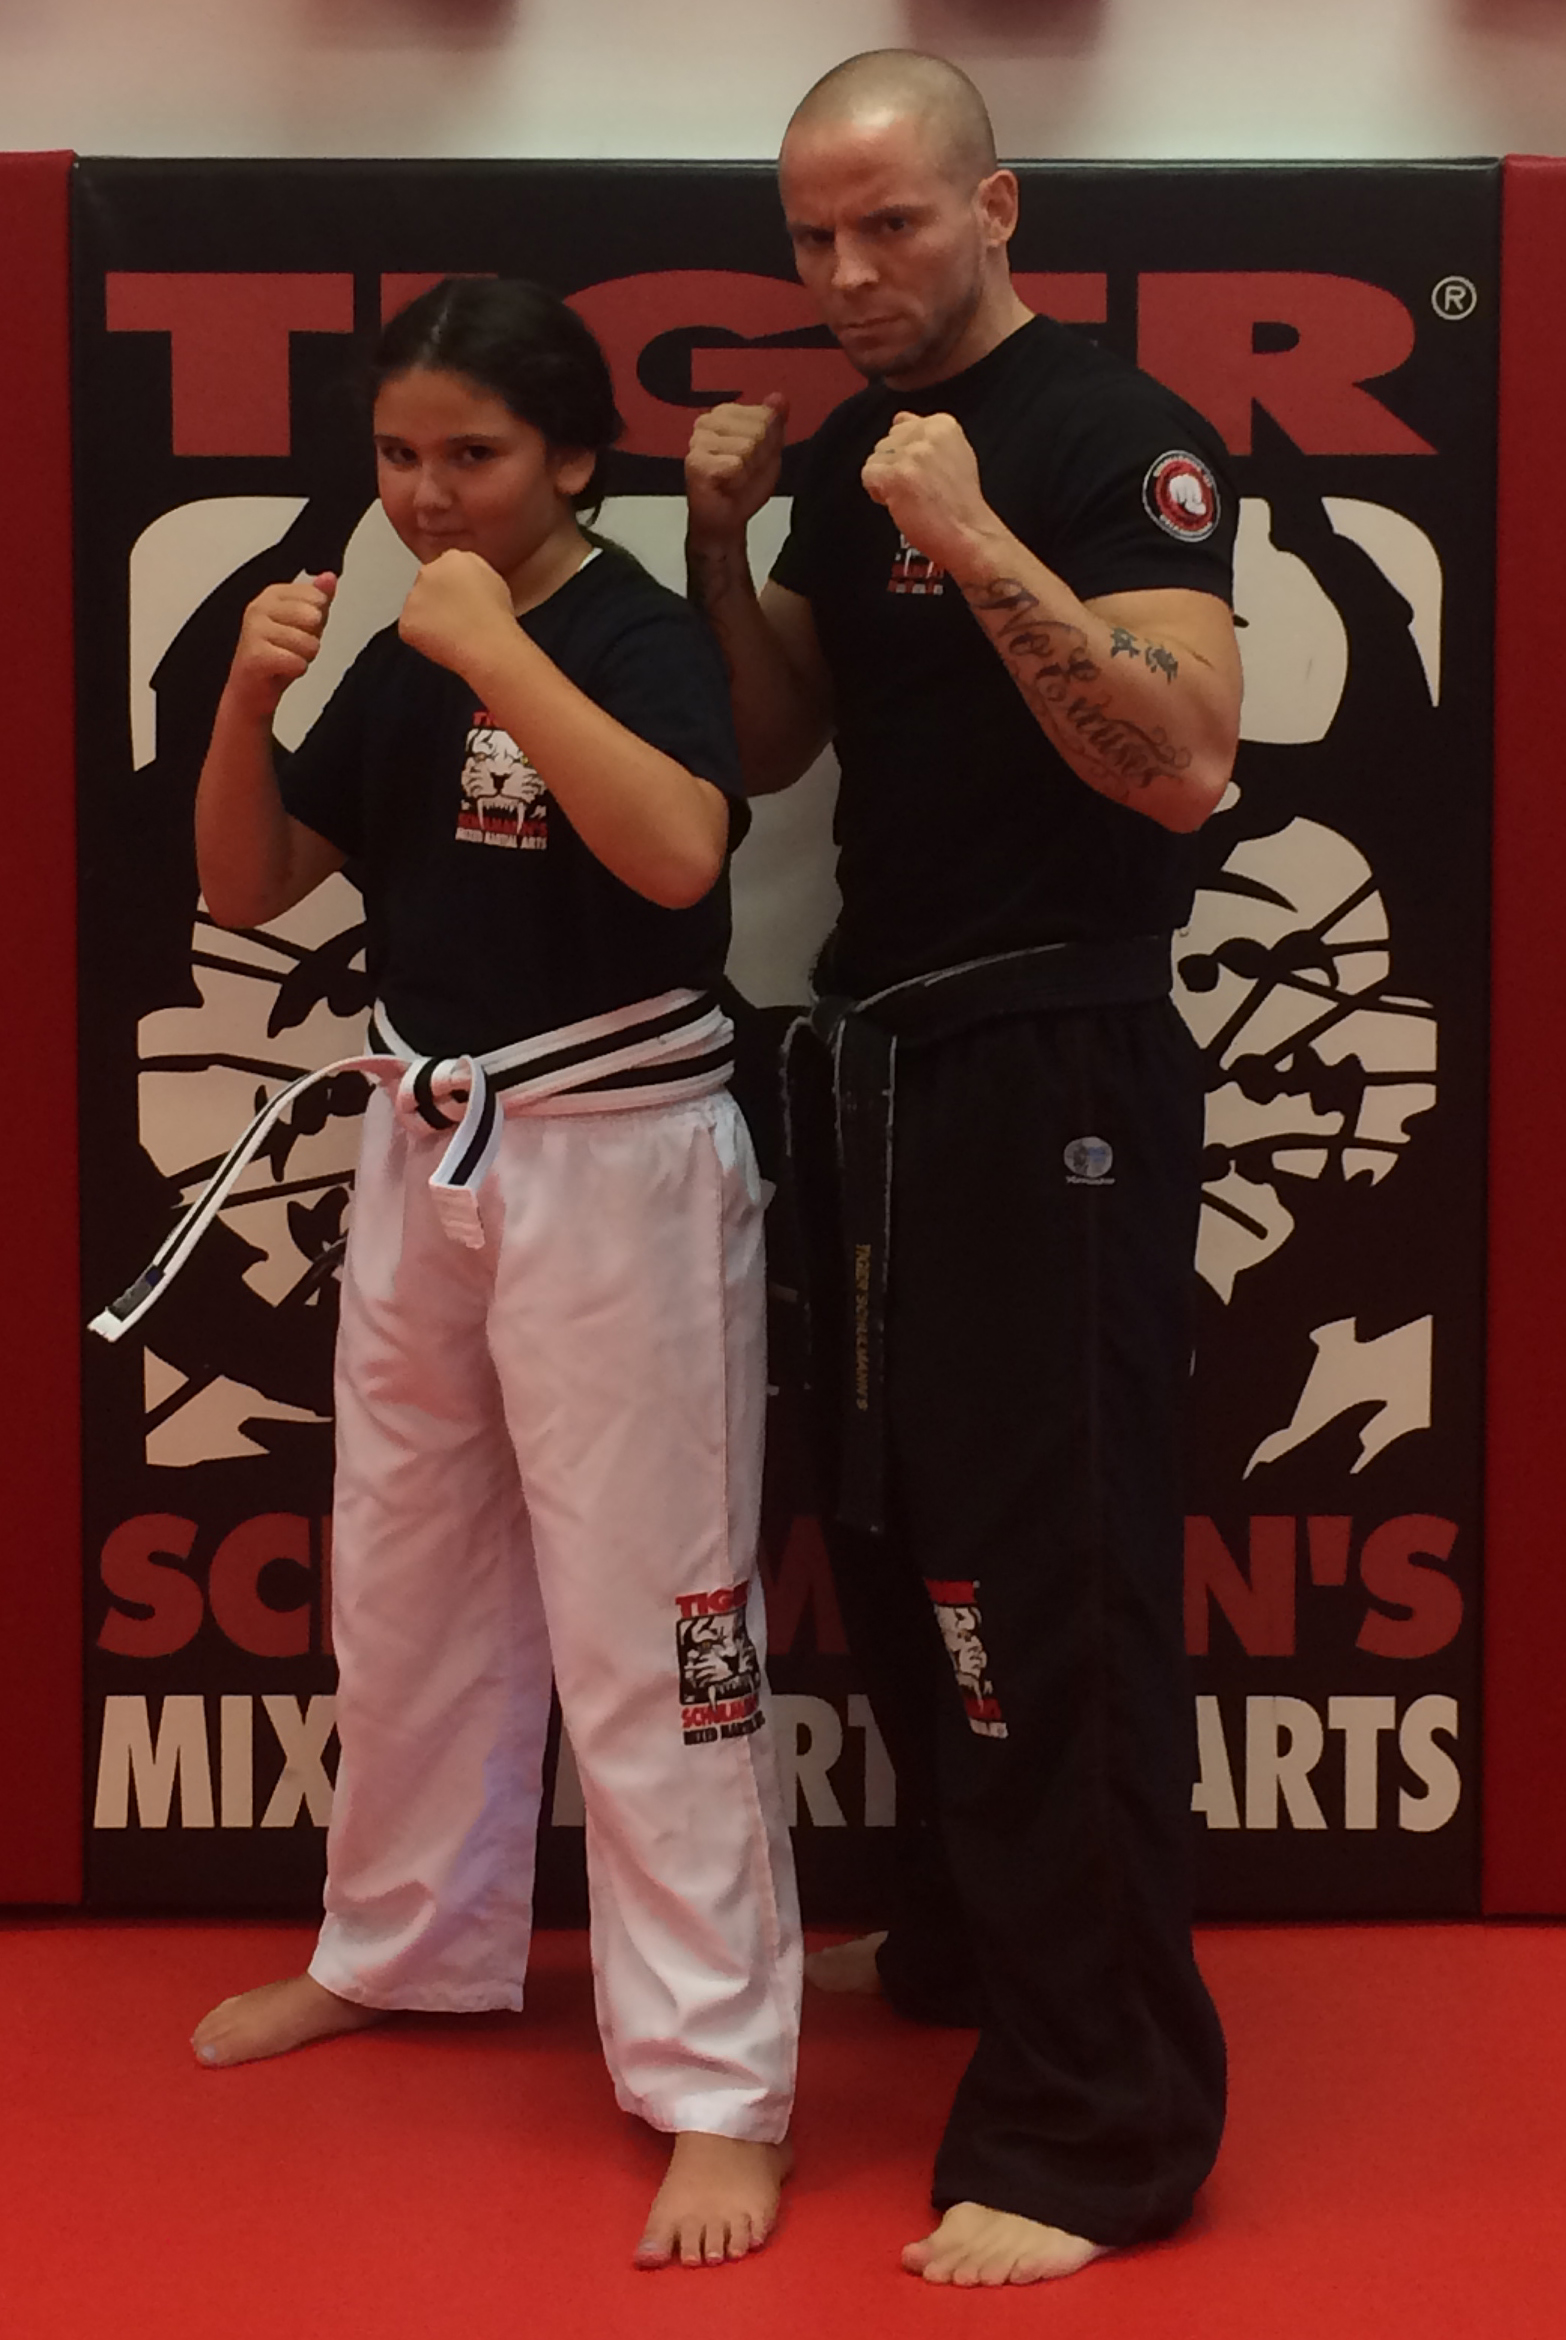 Tiger Schulmann's Martial Arts | Girl and Man Posing in Front of TSMA Logo